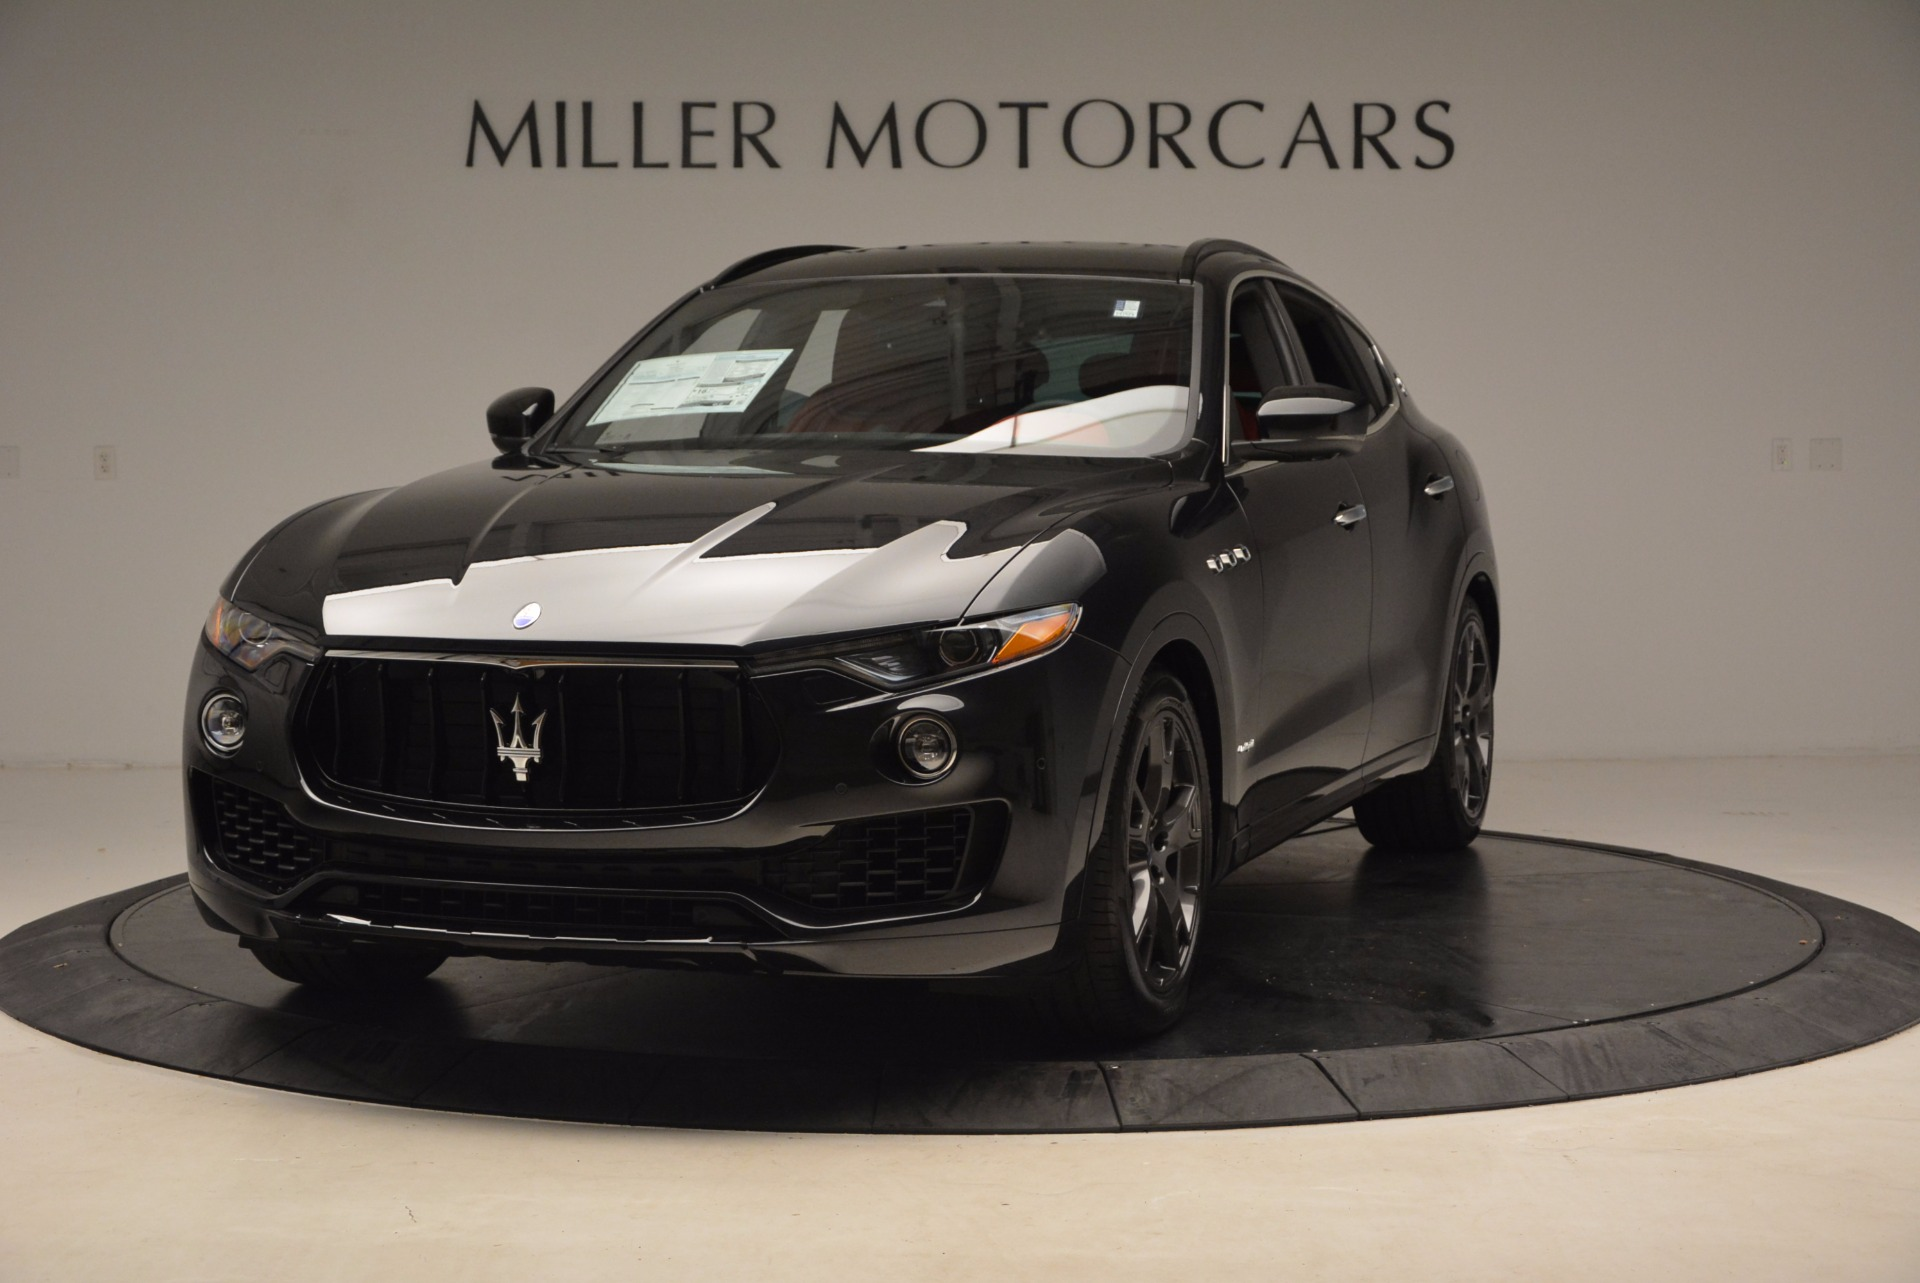 New 2018 Maserati Levante S GranSport for sale Sold at Bugatti of Greenwich in Greenwich CT 06830 1